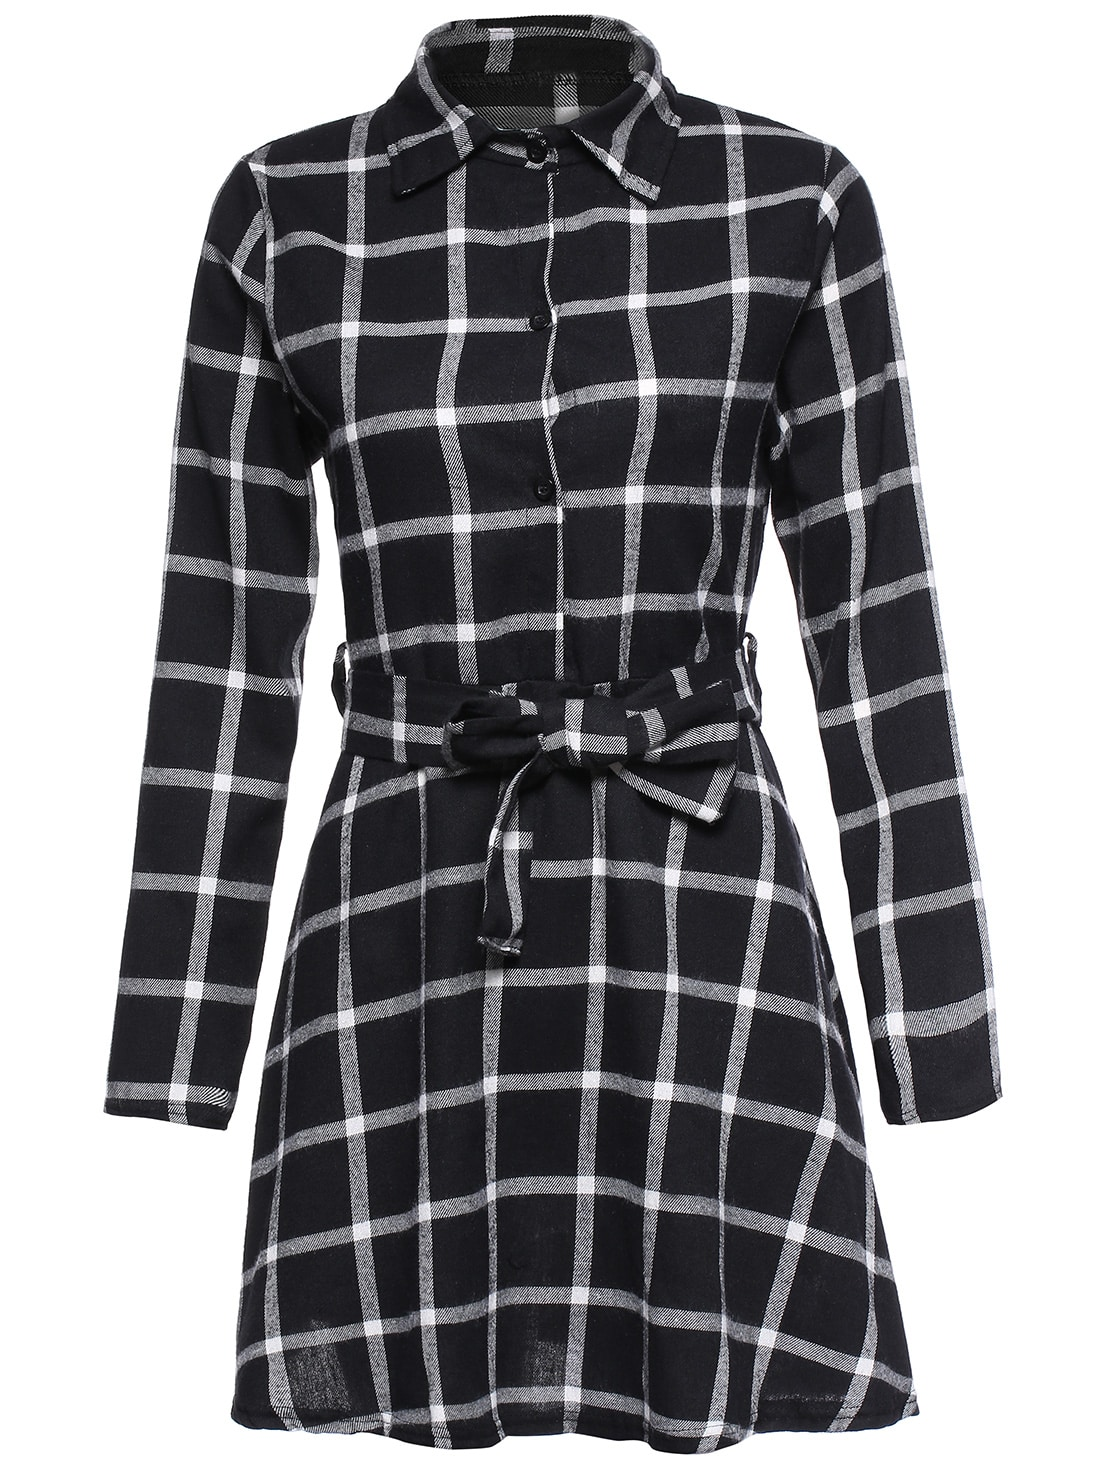 Shop for black plaid dress online at Target. Free shipping on purchases over $35 and save 5% every day with your Target REDcard.